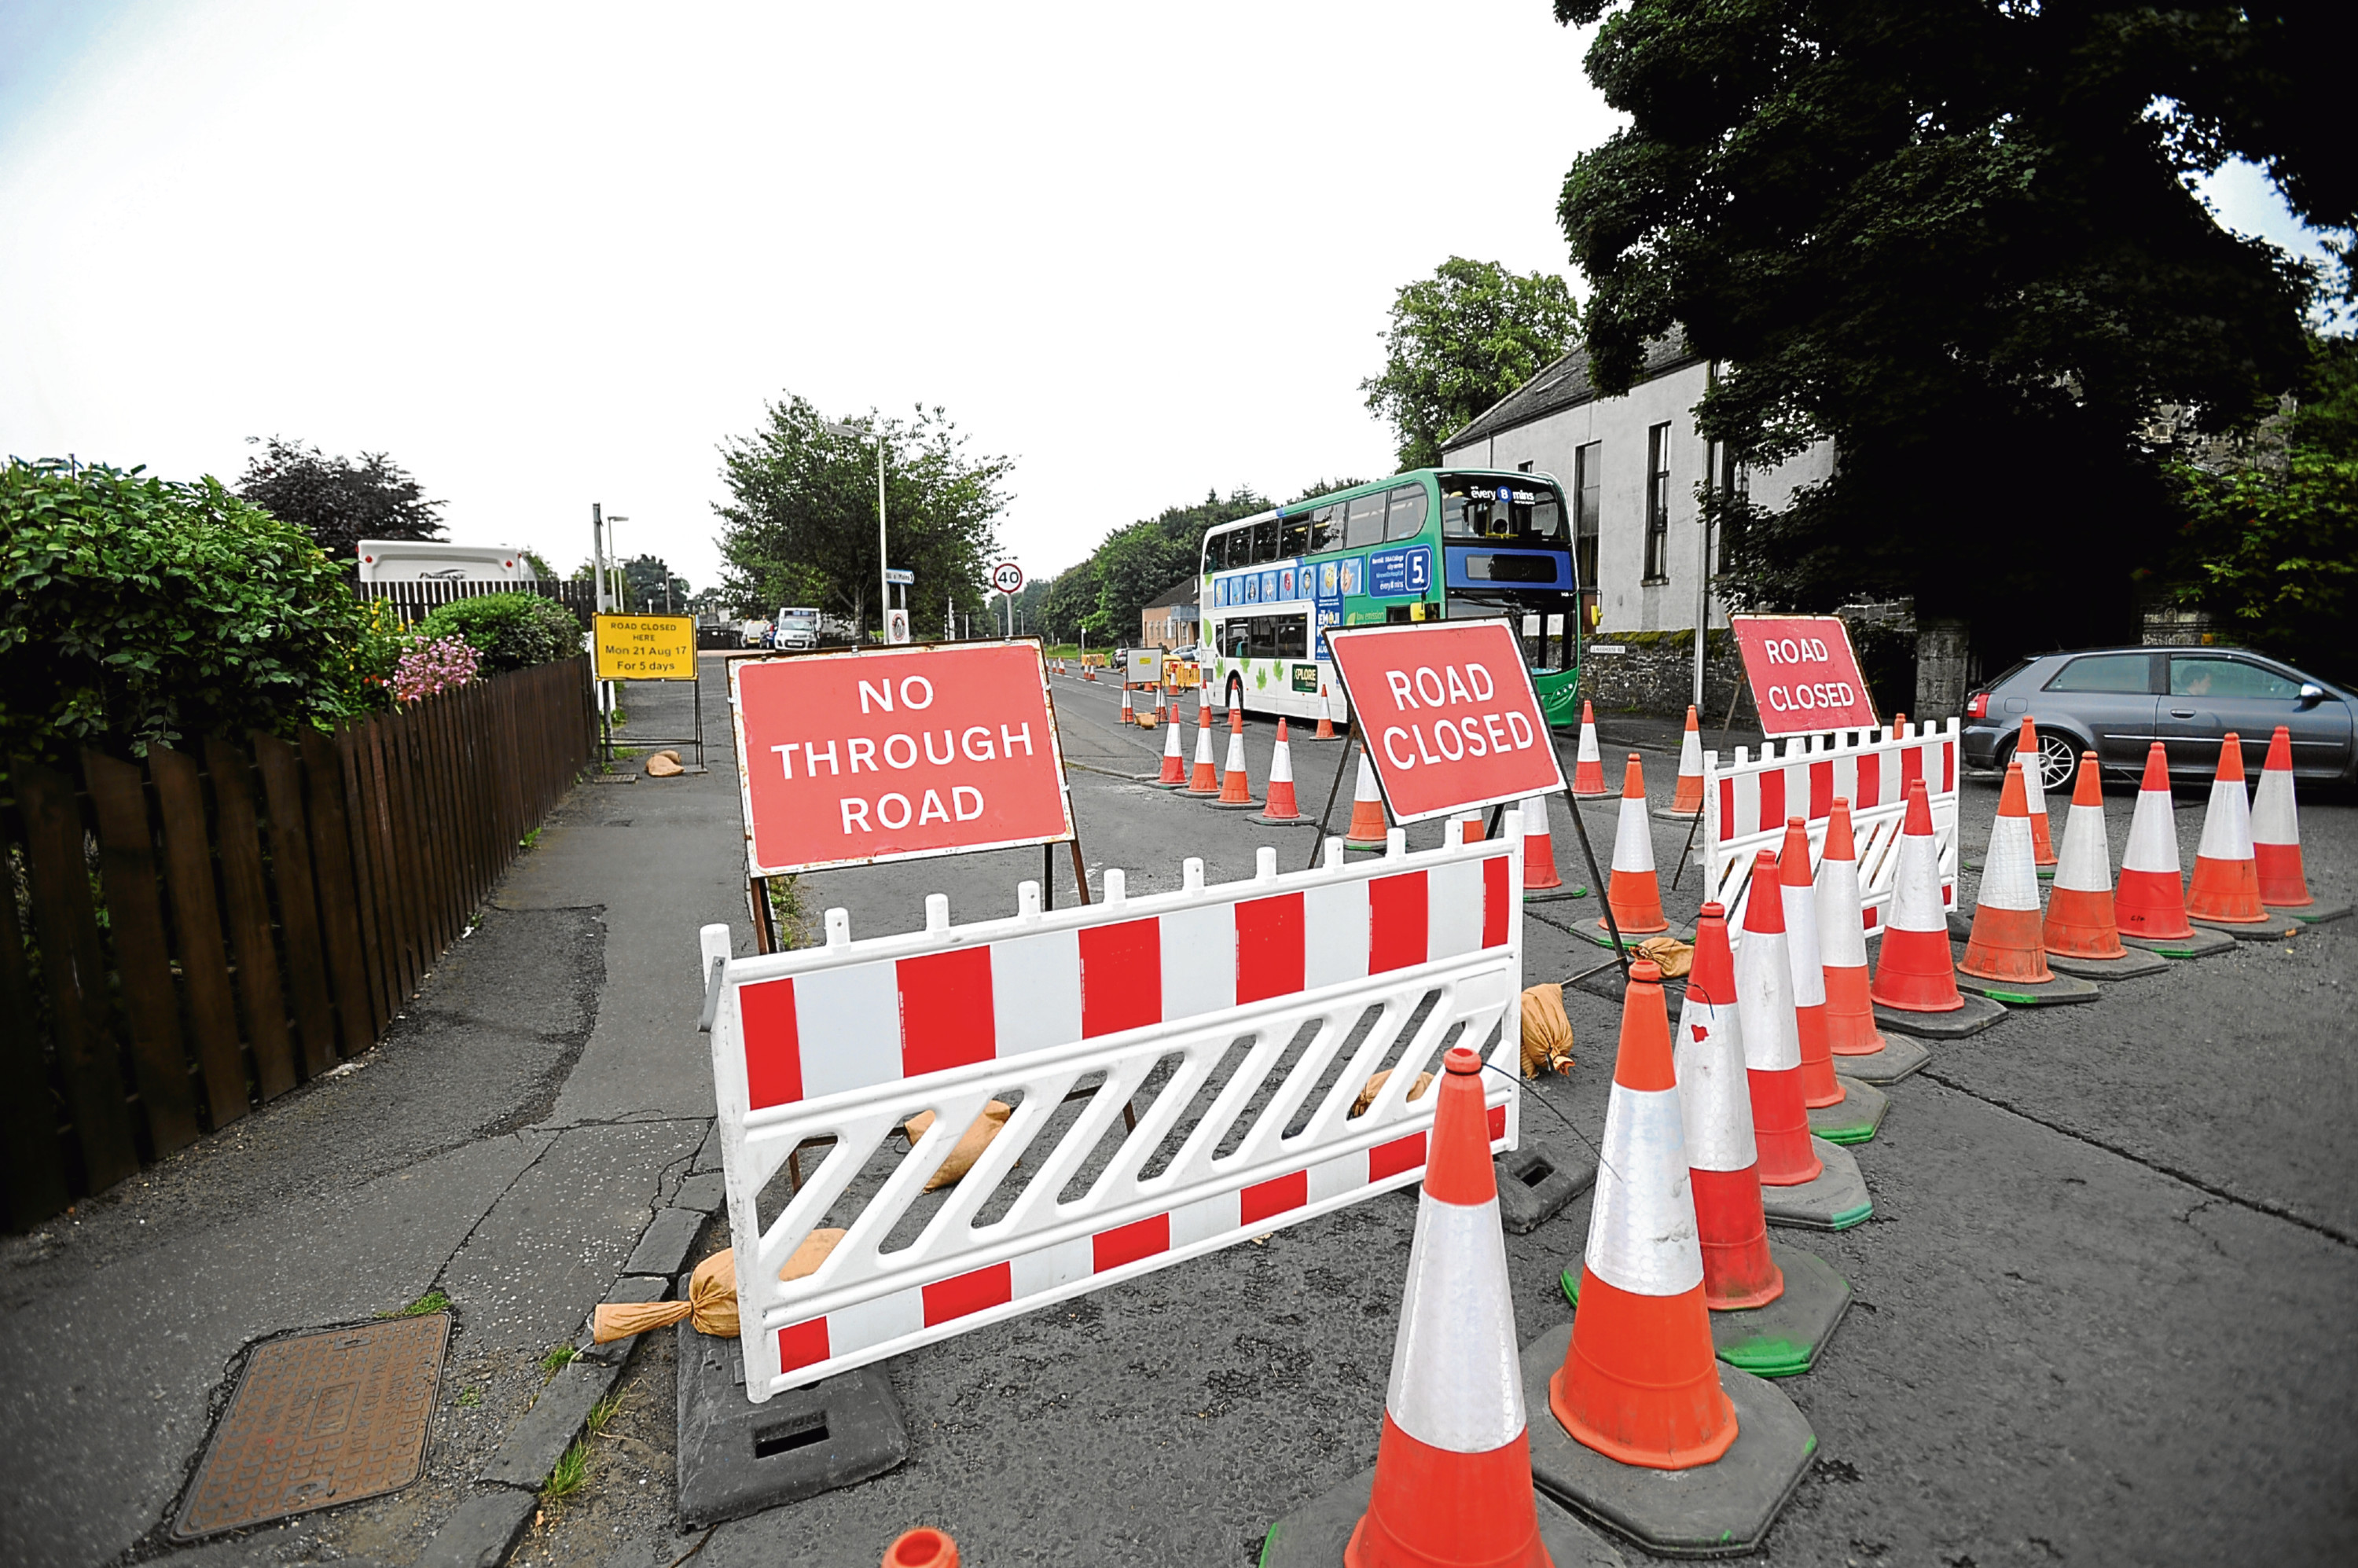 Claverhouse Road has been closed while SGN undertakes work to connect a property to the gas network.